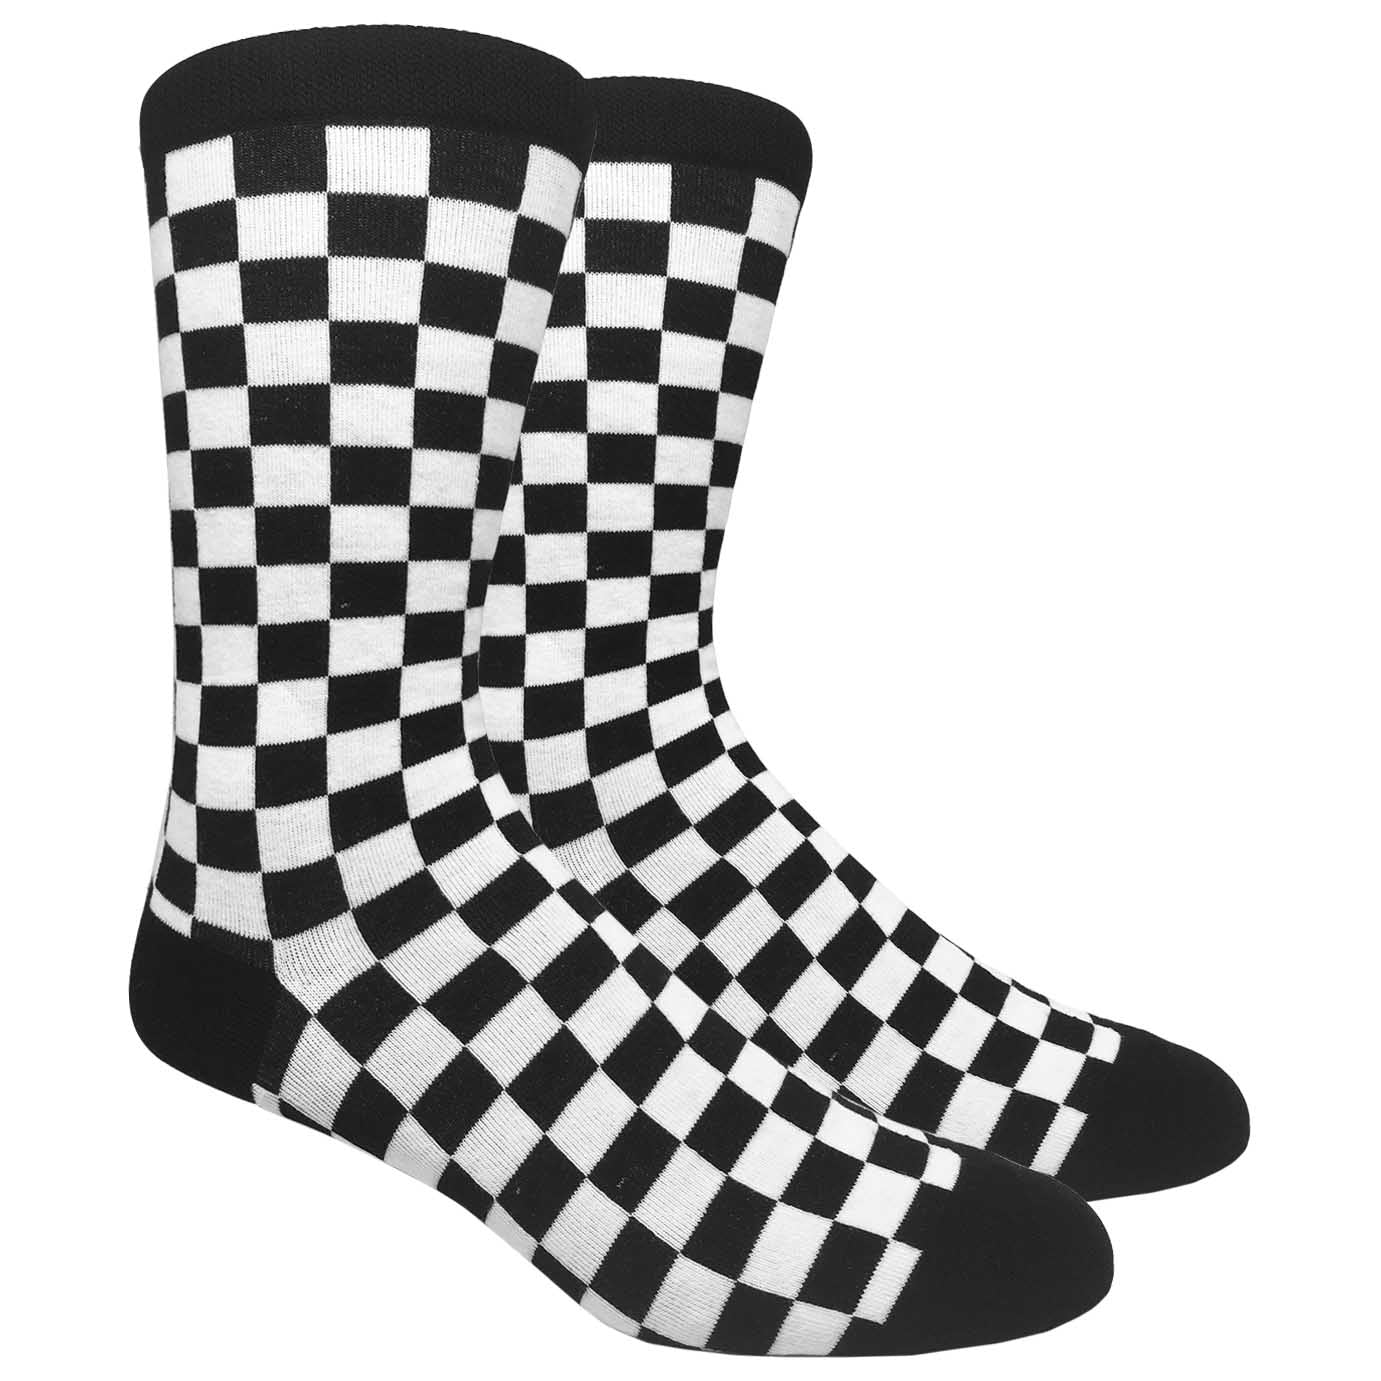 Checkered (Black)